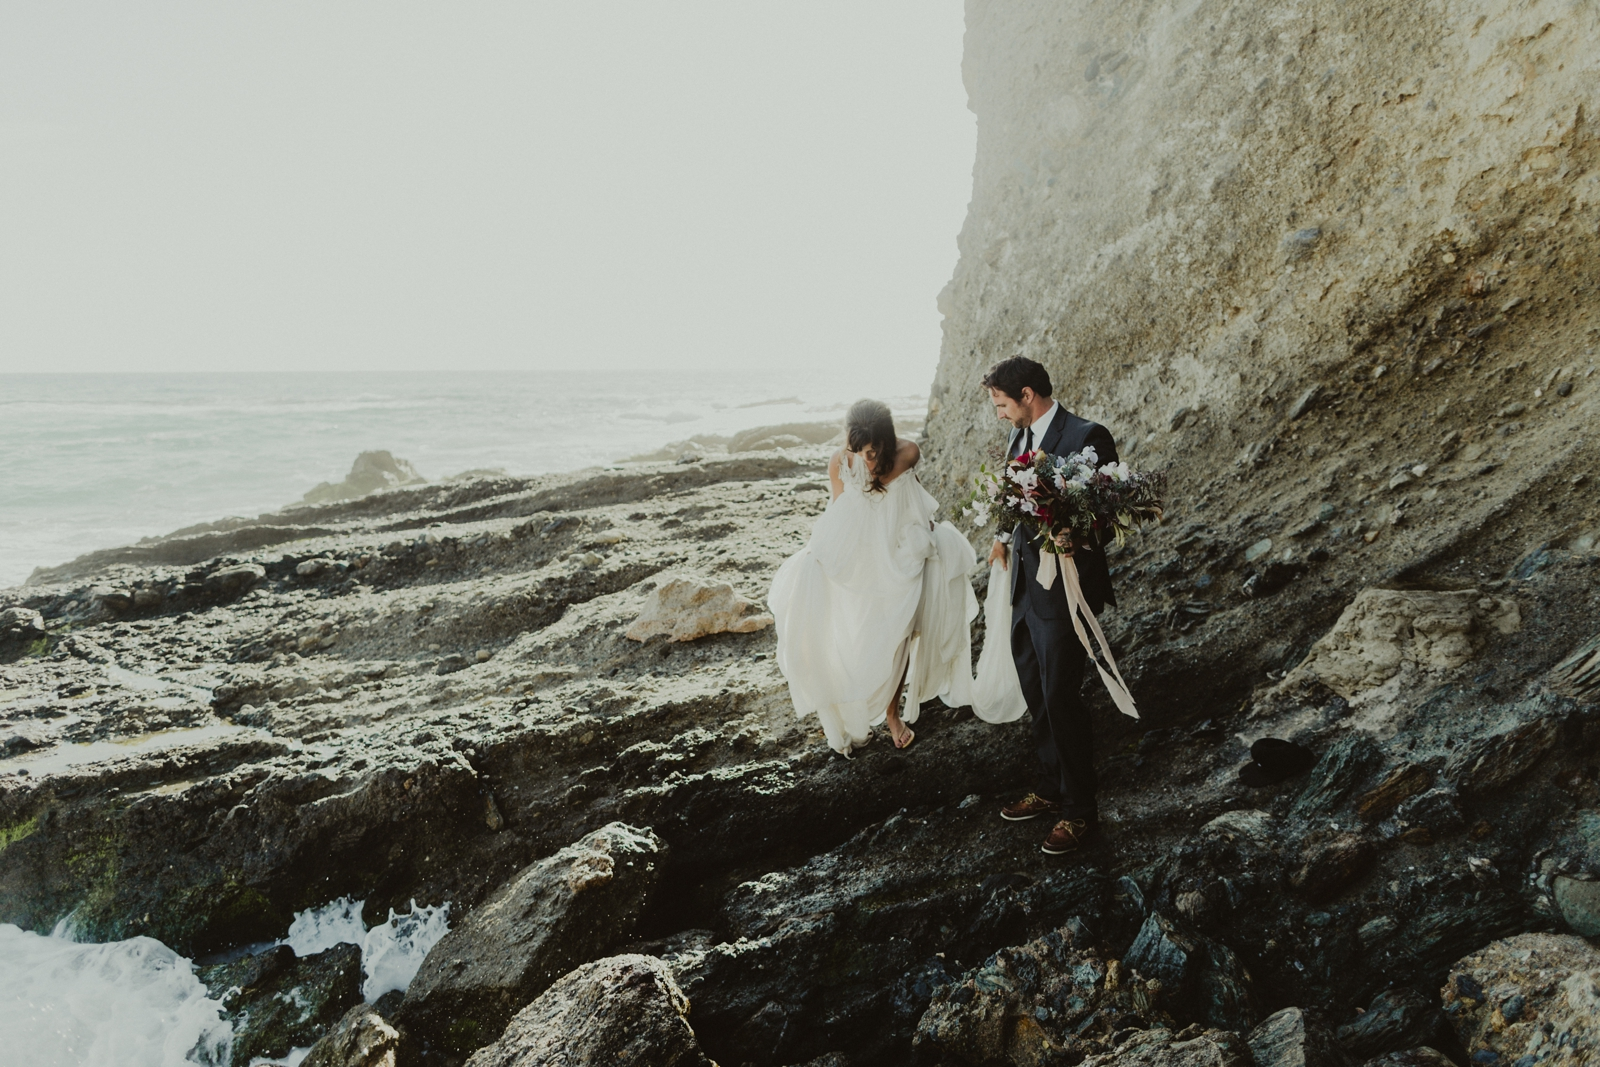 Kevin+Angie-Married-Blog-00033.jpg